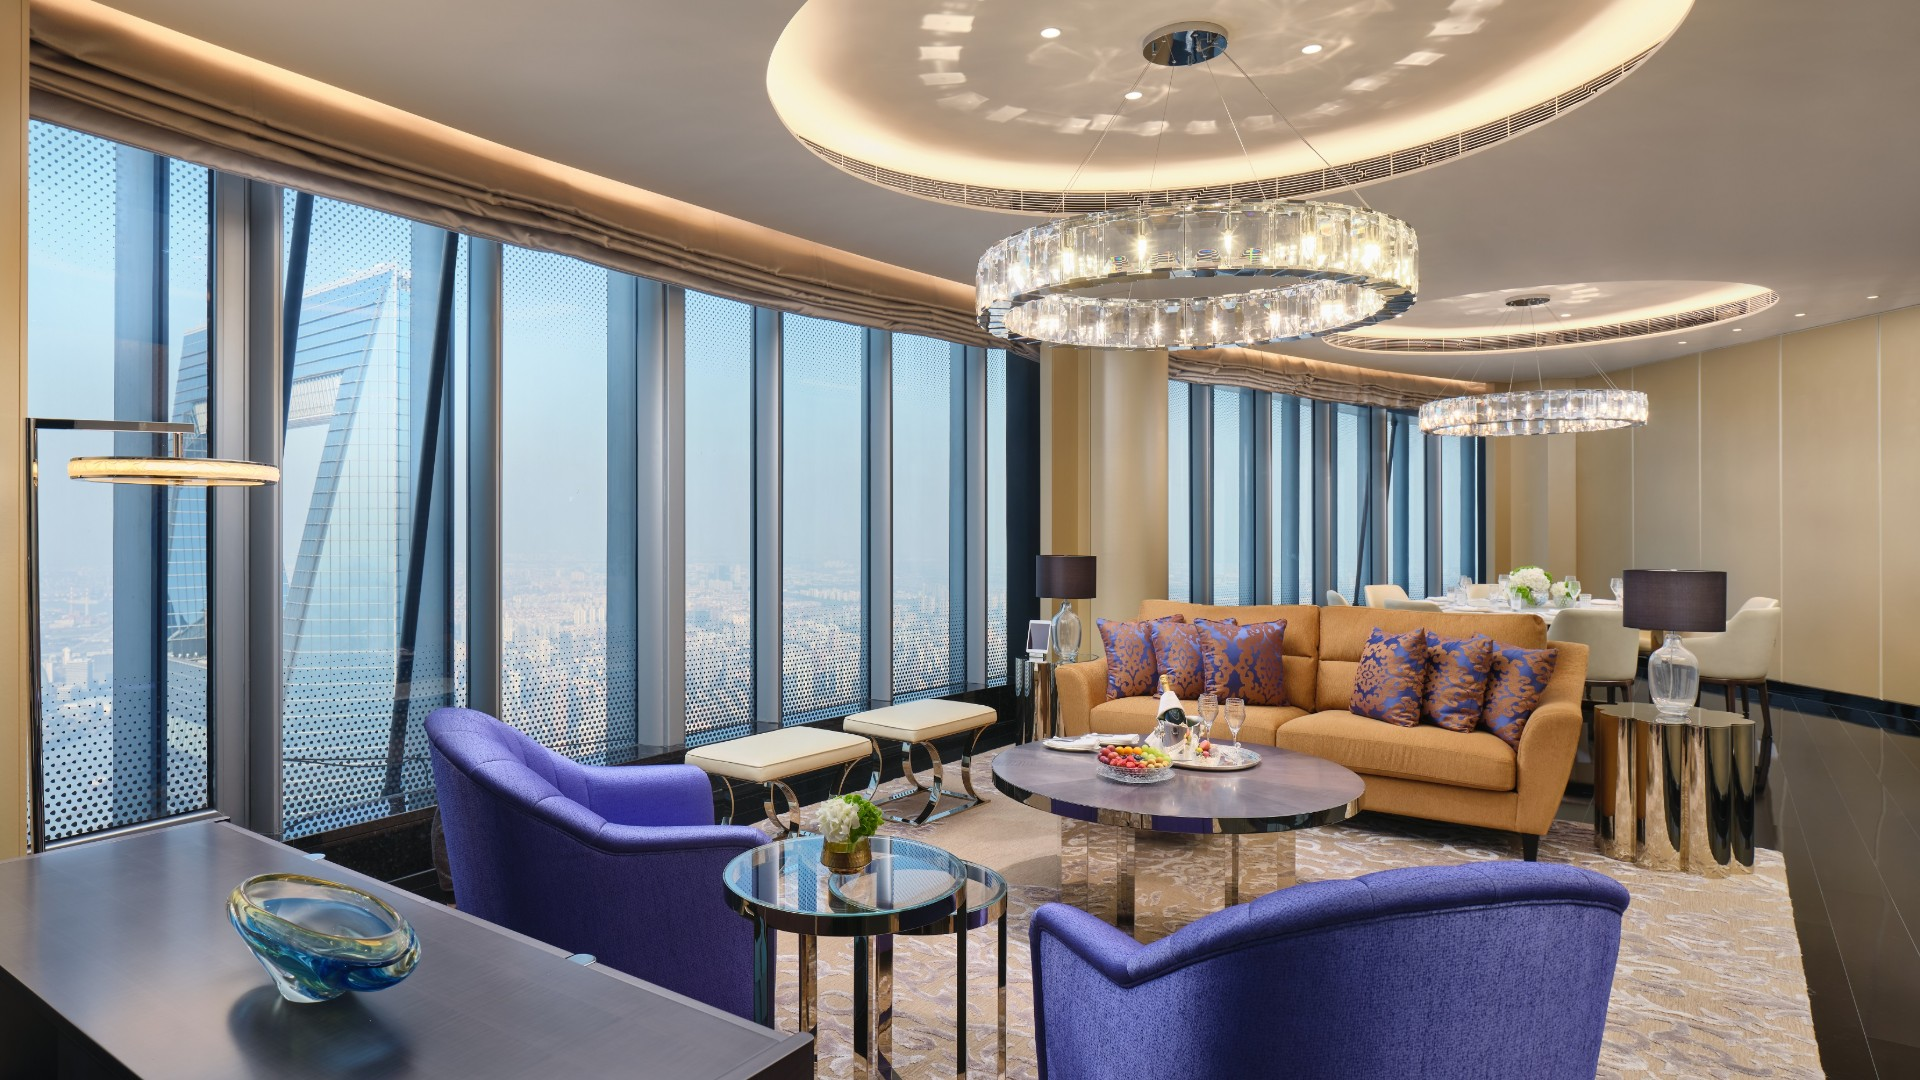 The grandeur of the decorations in the Jin Jiang Suite of the J Hotel Shanghai Tower is almost as stunning as the views.